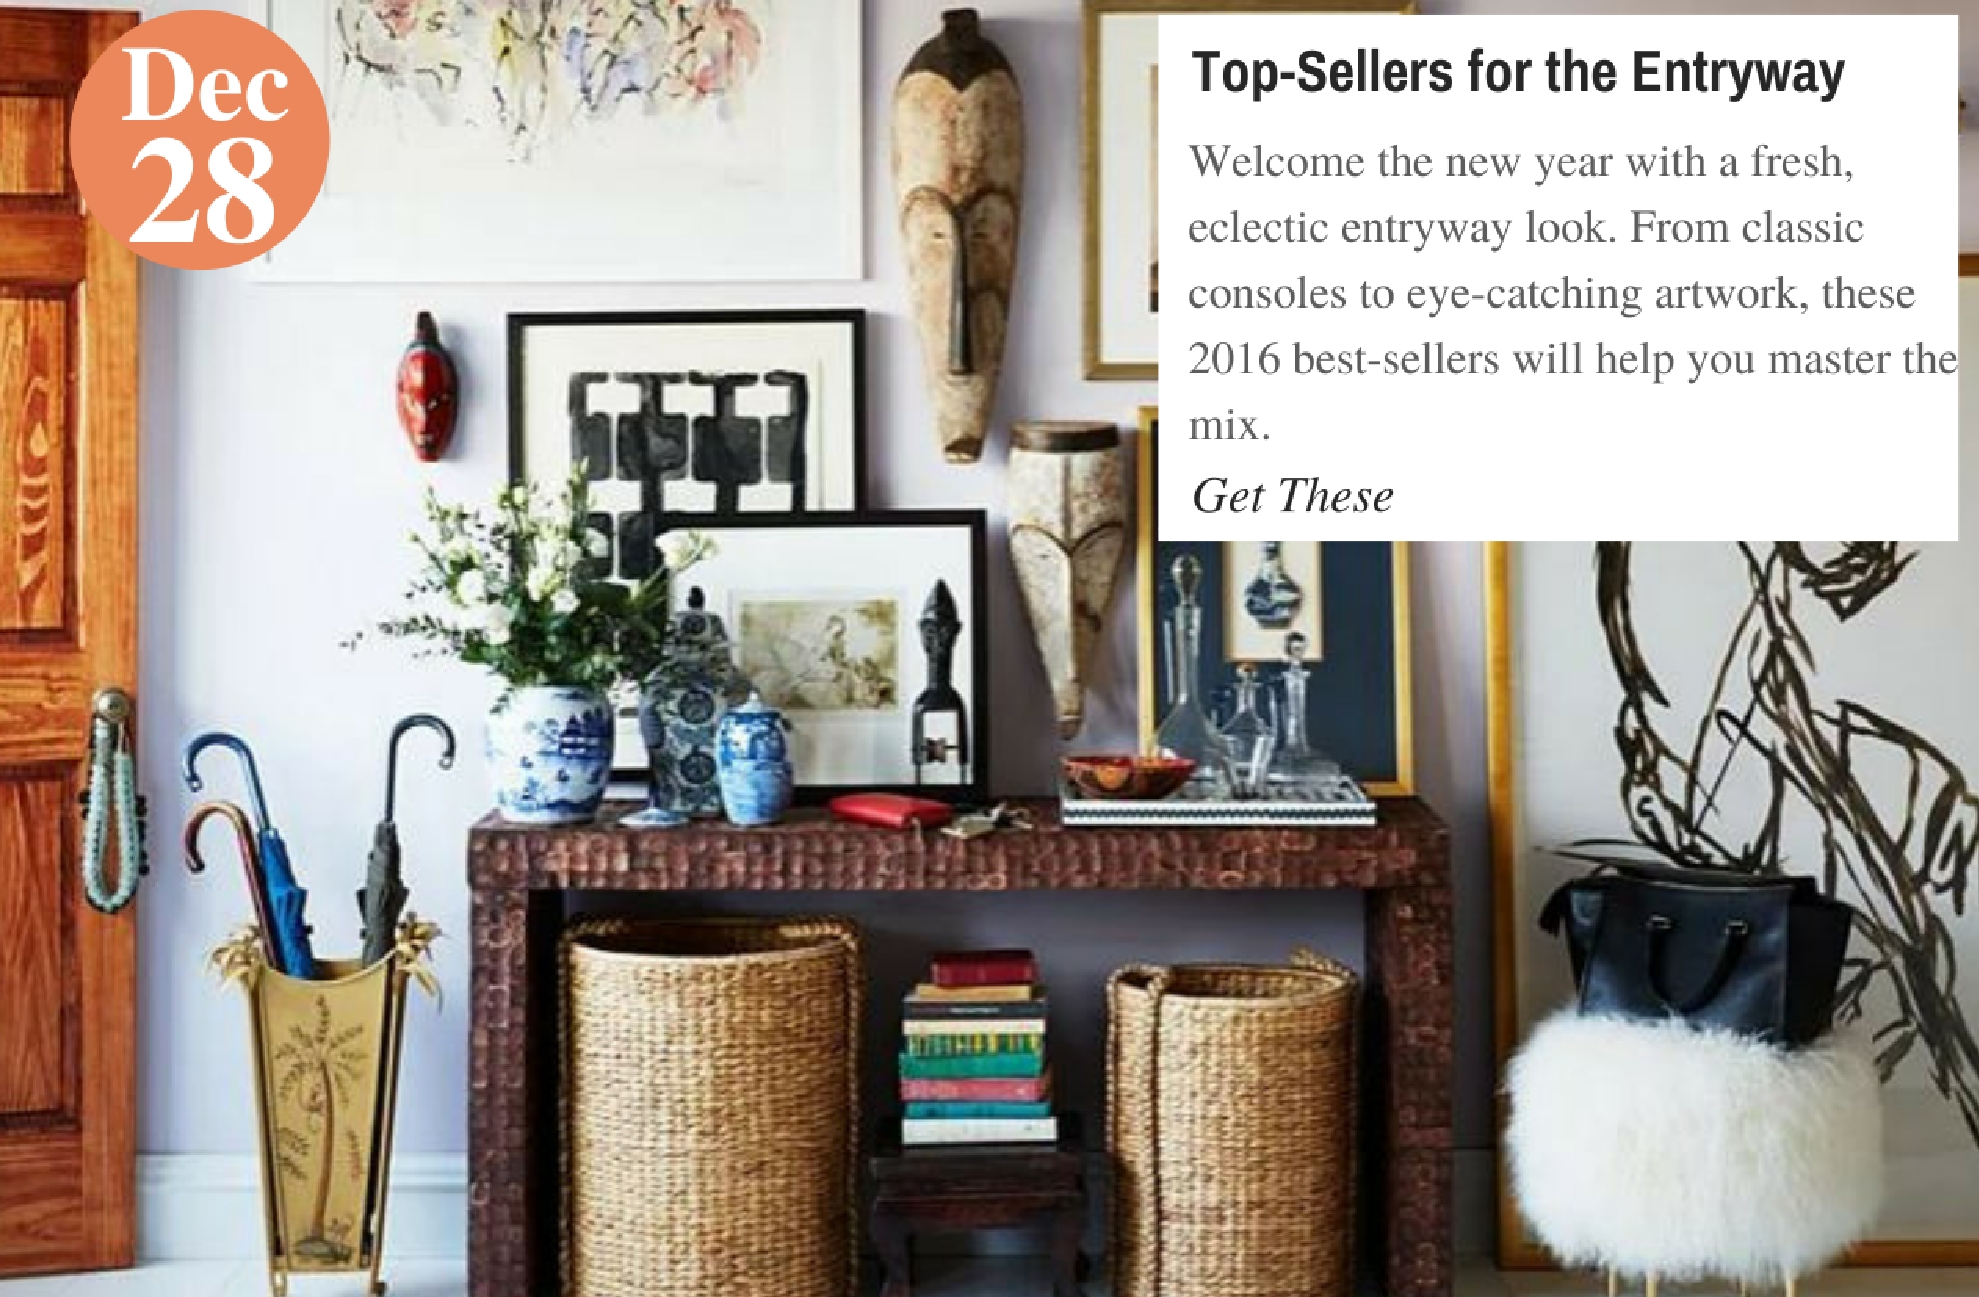 Top-Sellers for the Entryway